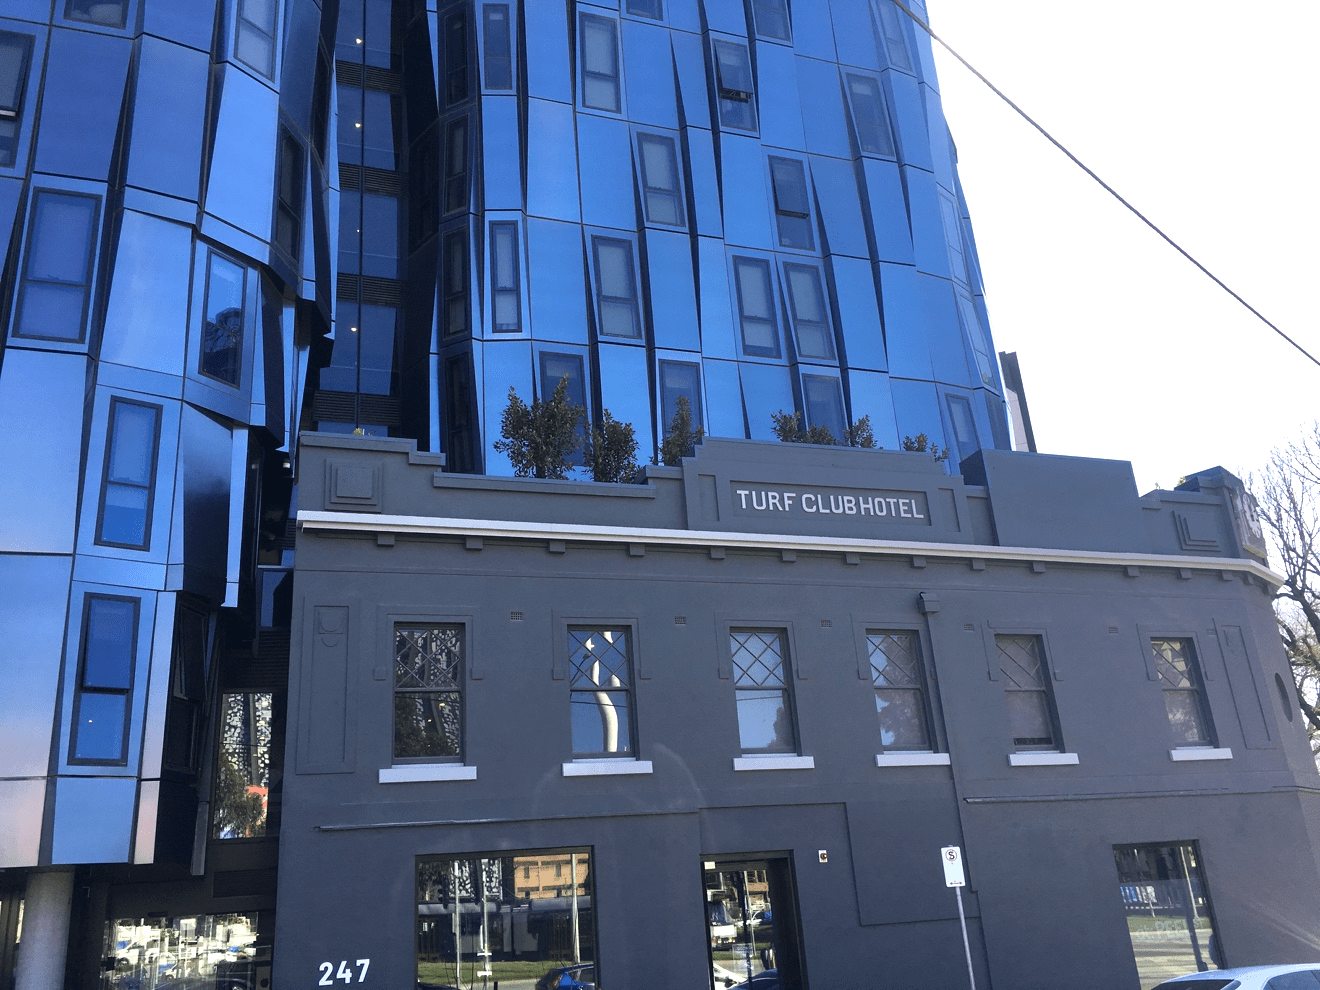 Turf Club Hotel façade, North Melbourne – Photo by Julia Frecker